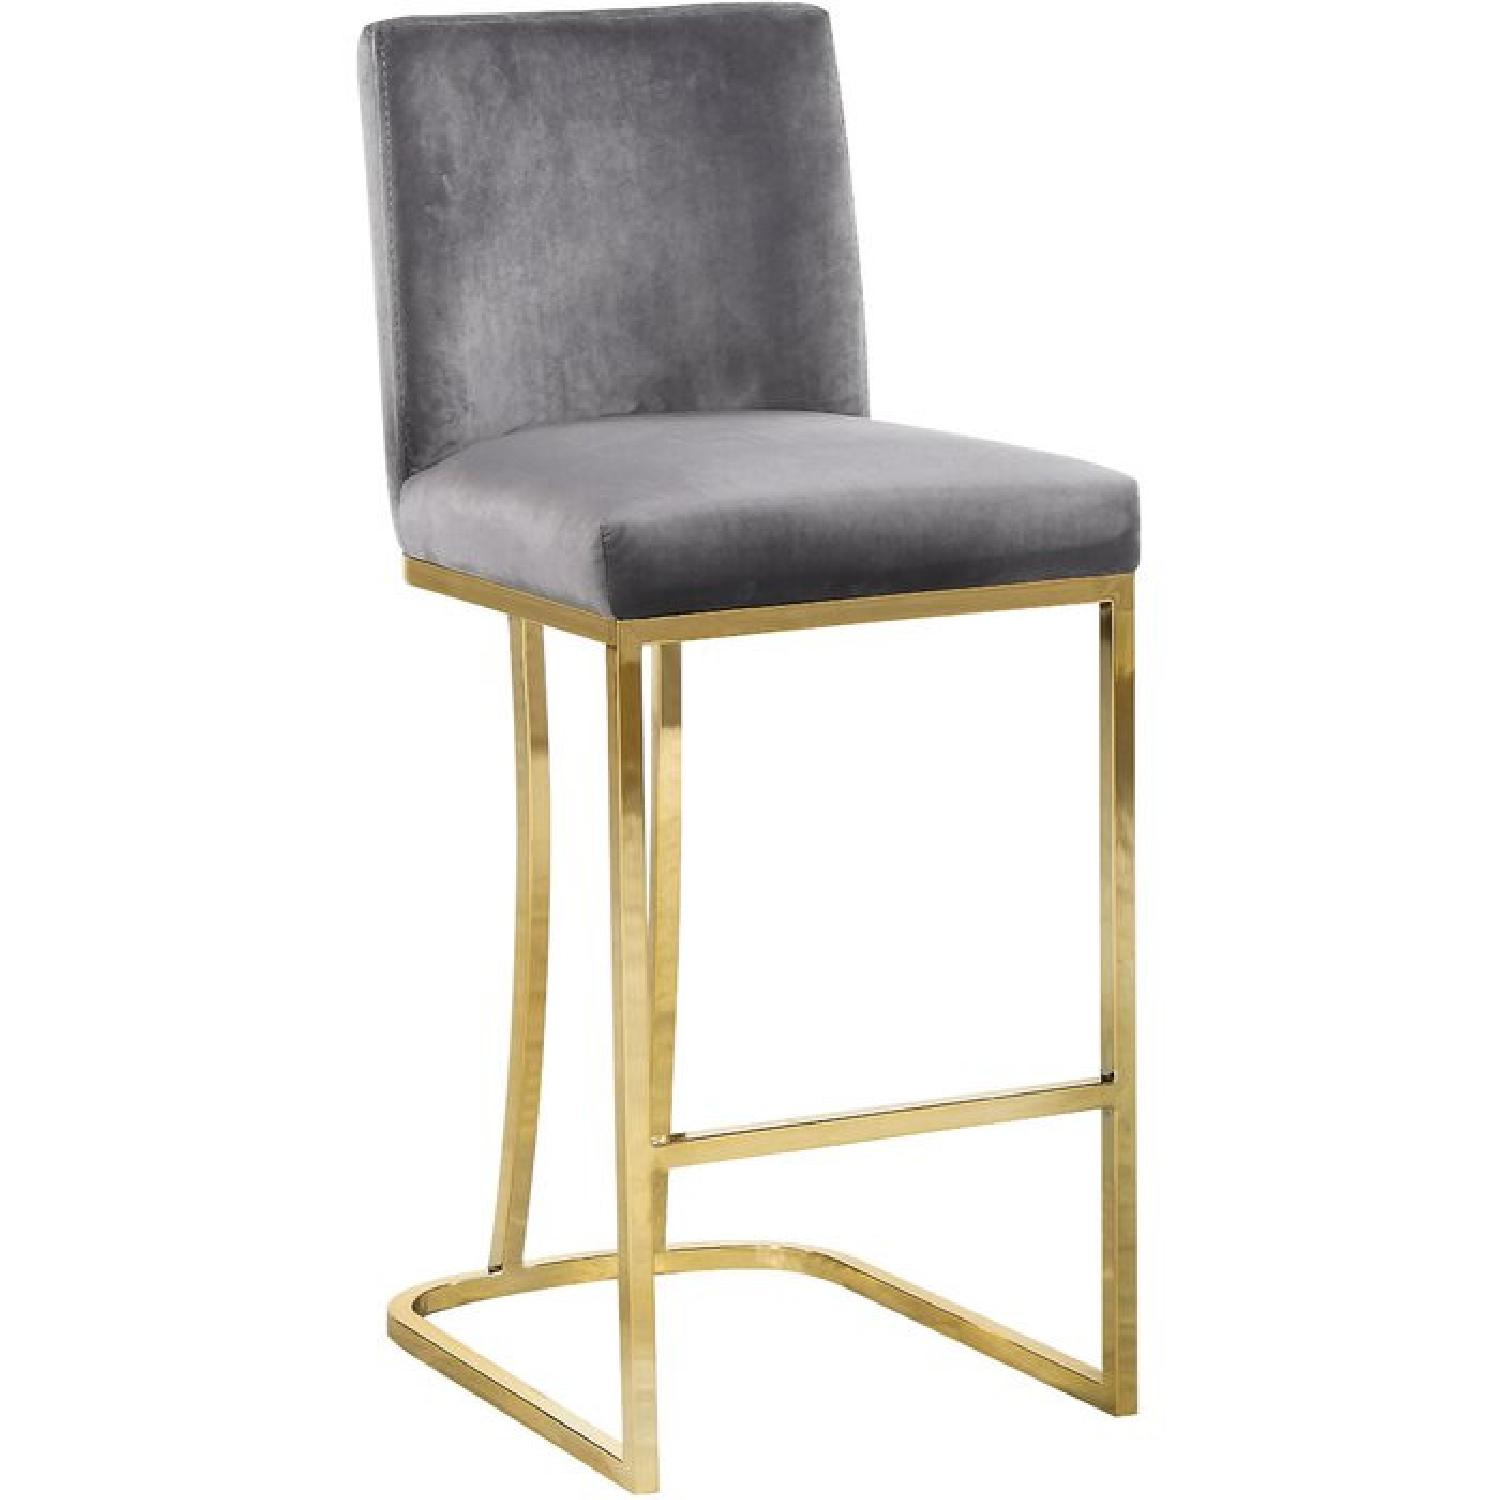 Foundstone Silver Noah Seppich Counter Stool - image-0